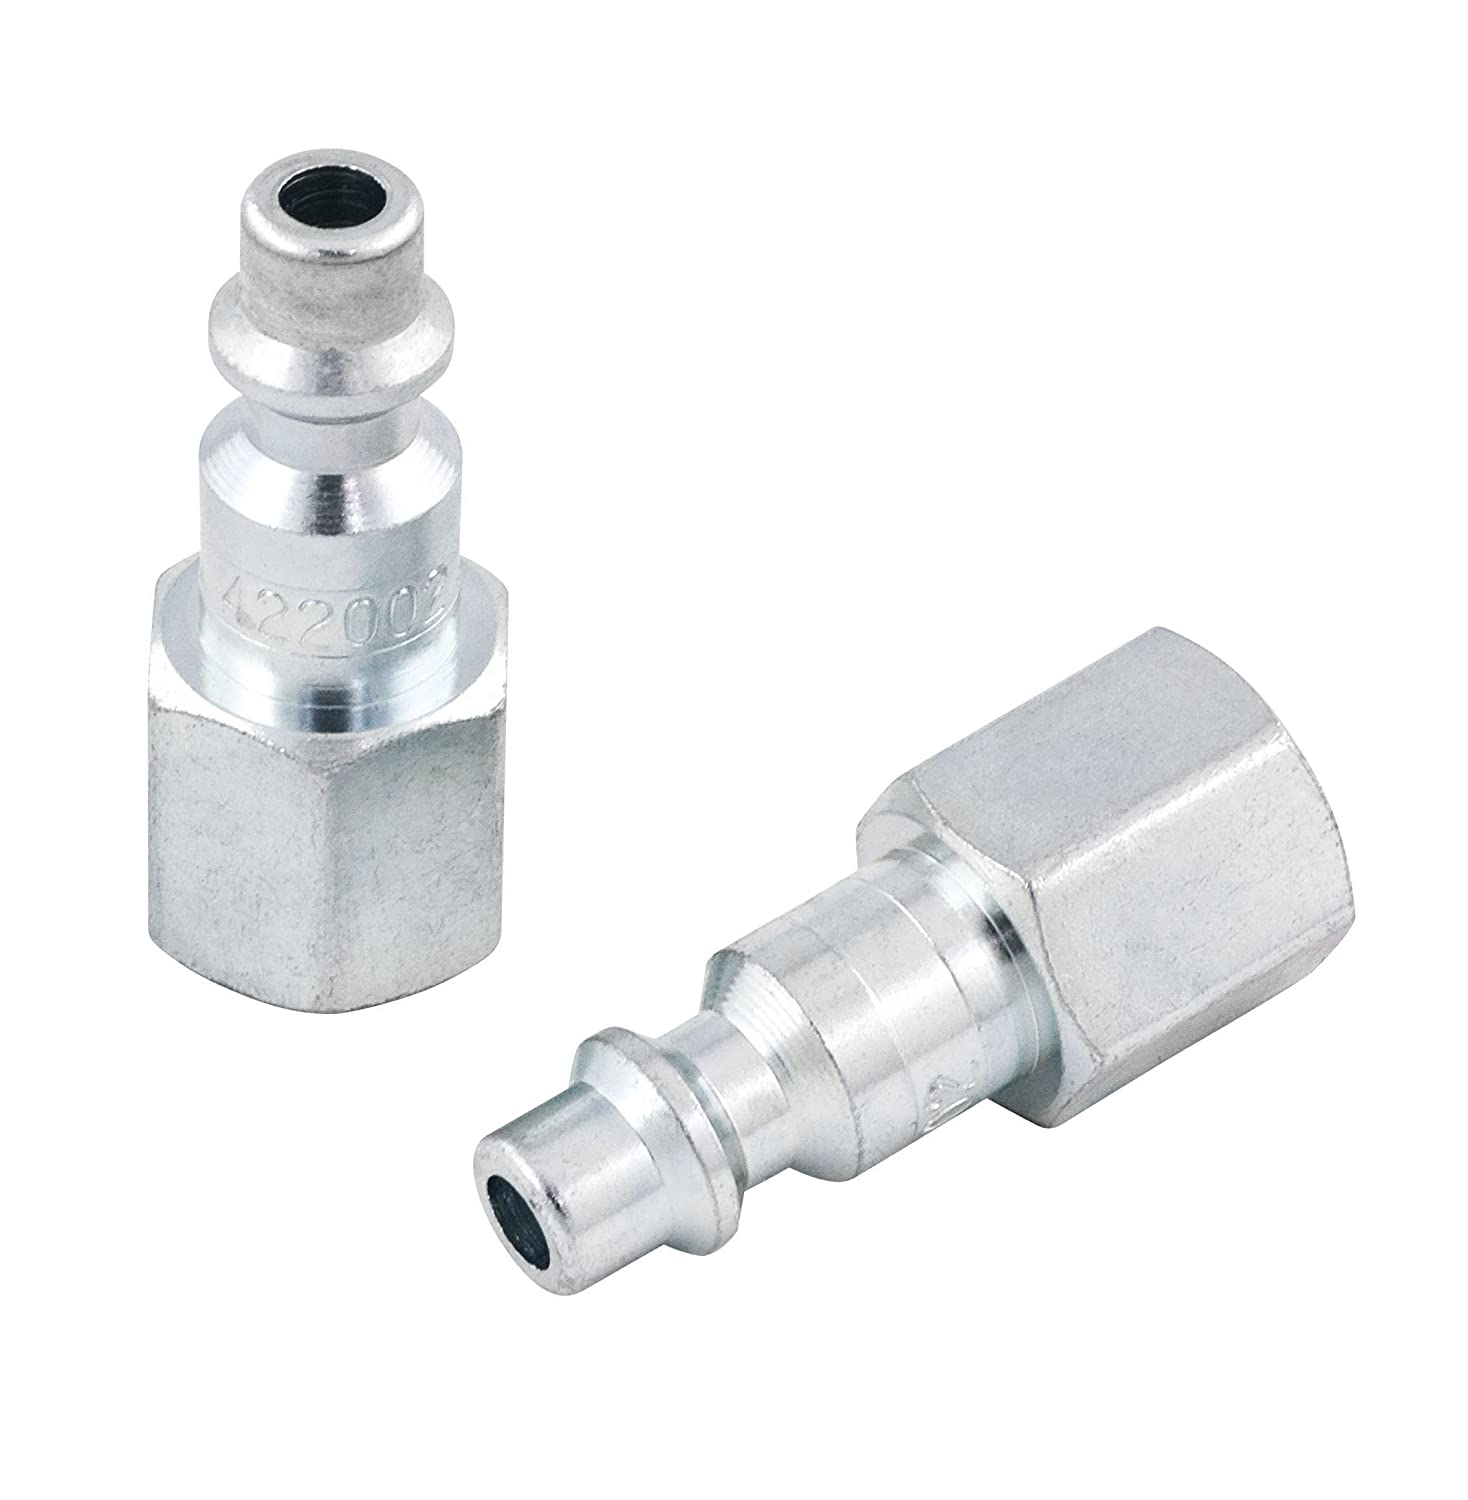 Jet 420002 - I/M' Plug Female-1/4' Body X 1/4' Npt (2/Pkg) JET Equipment & Tools